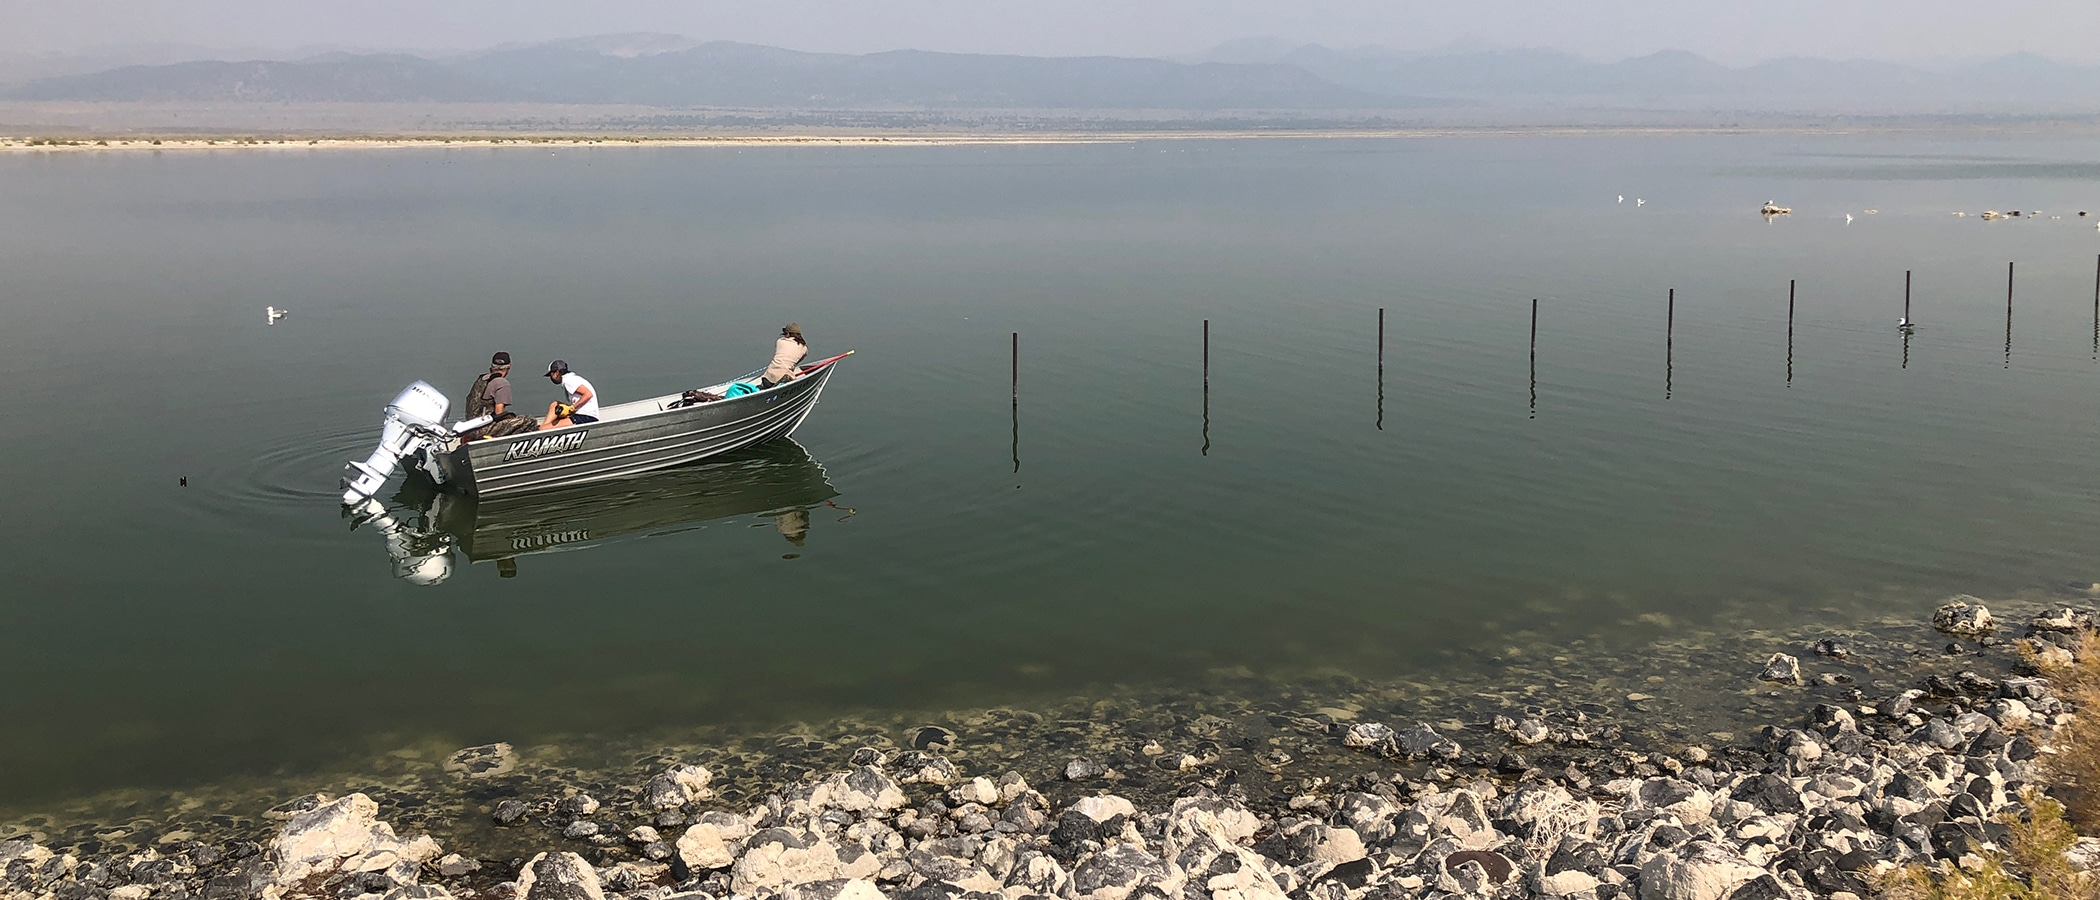 2 people sit in a small gray motor boat on the still, dark green water. On the right side of the boat, fence posts stick up out of the water.